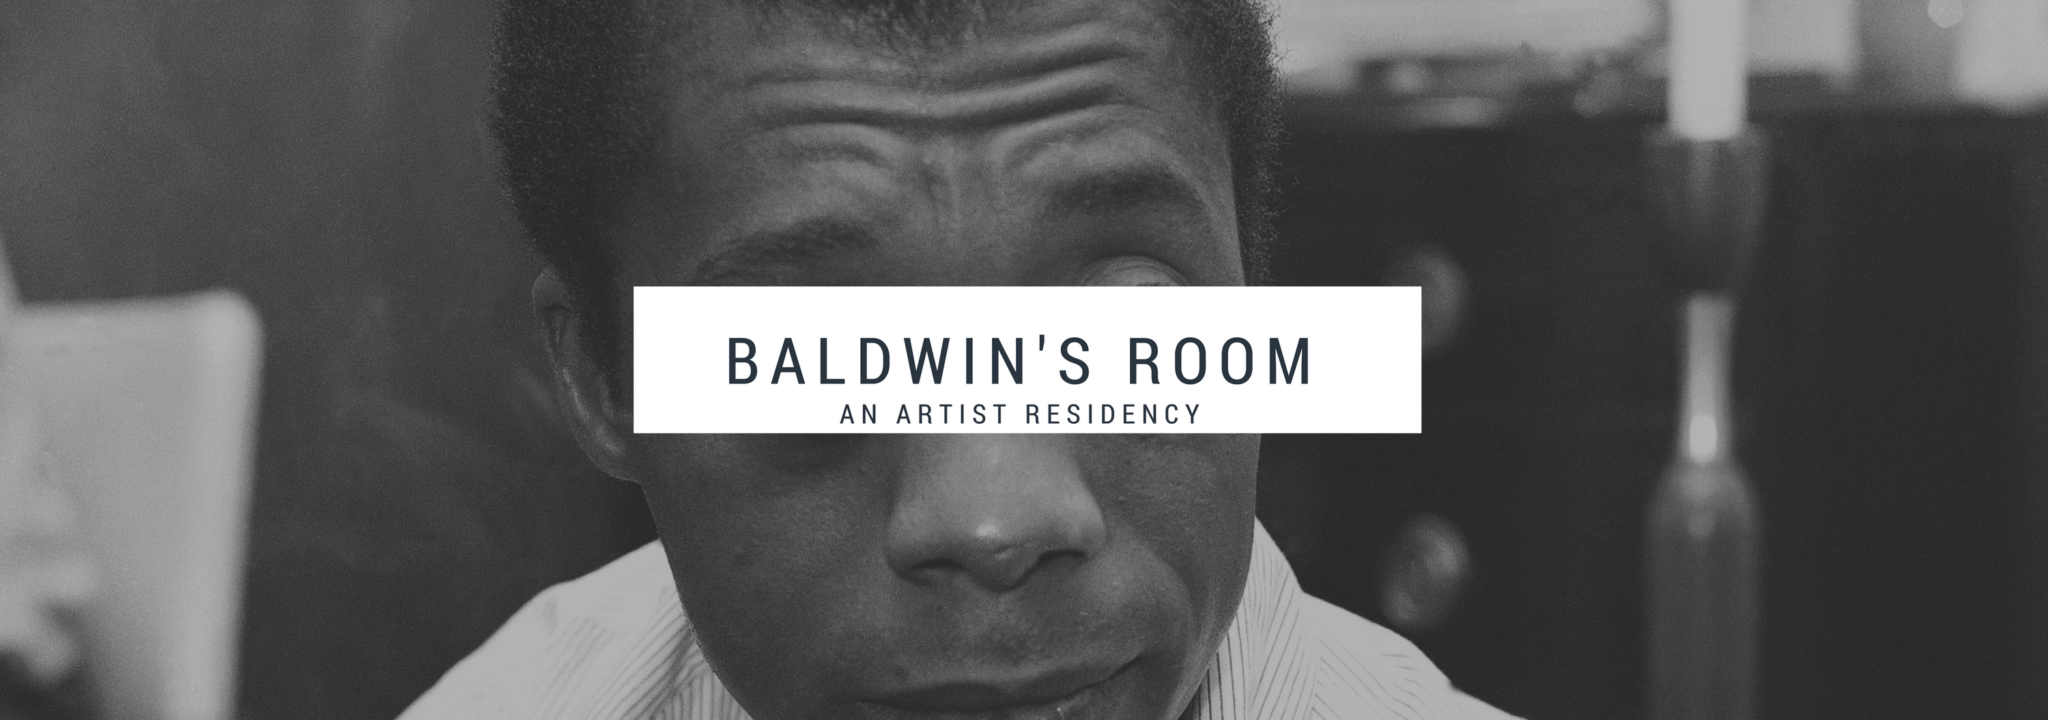 baldwins-room-2